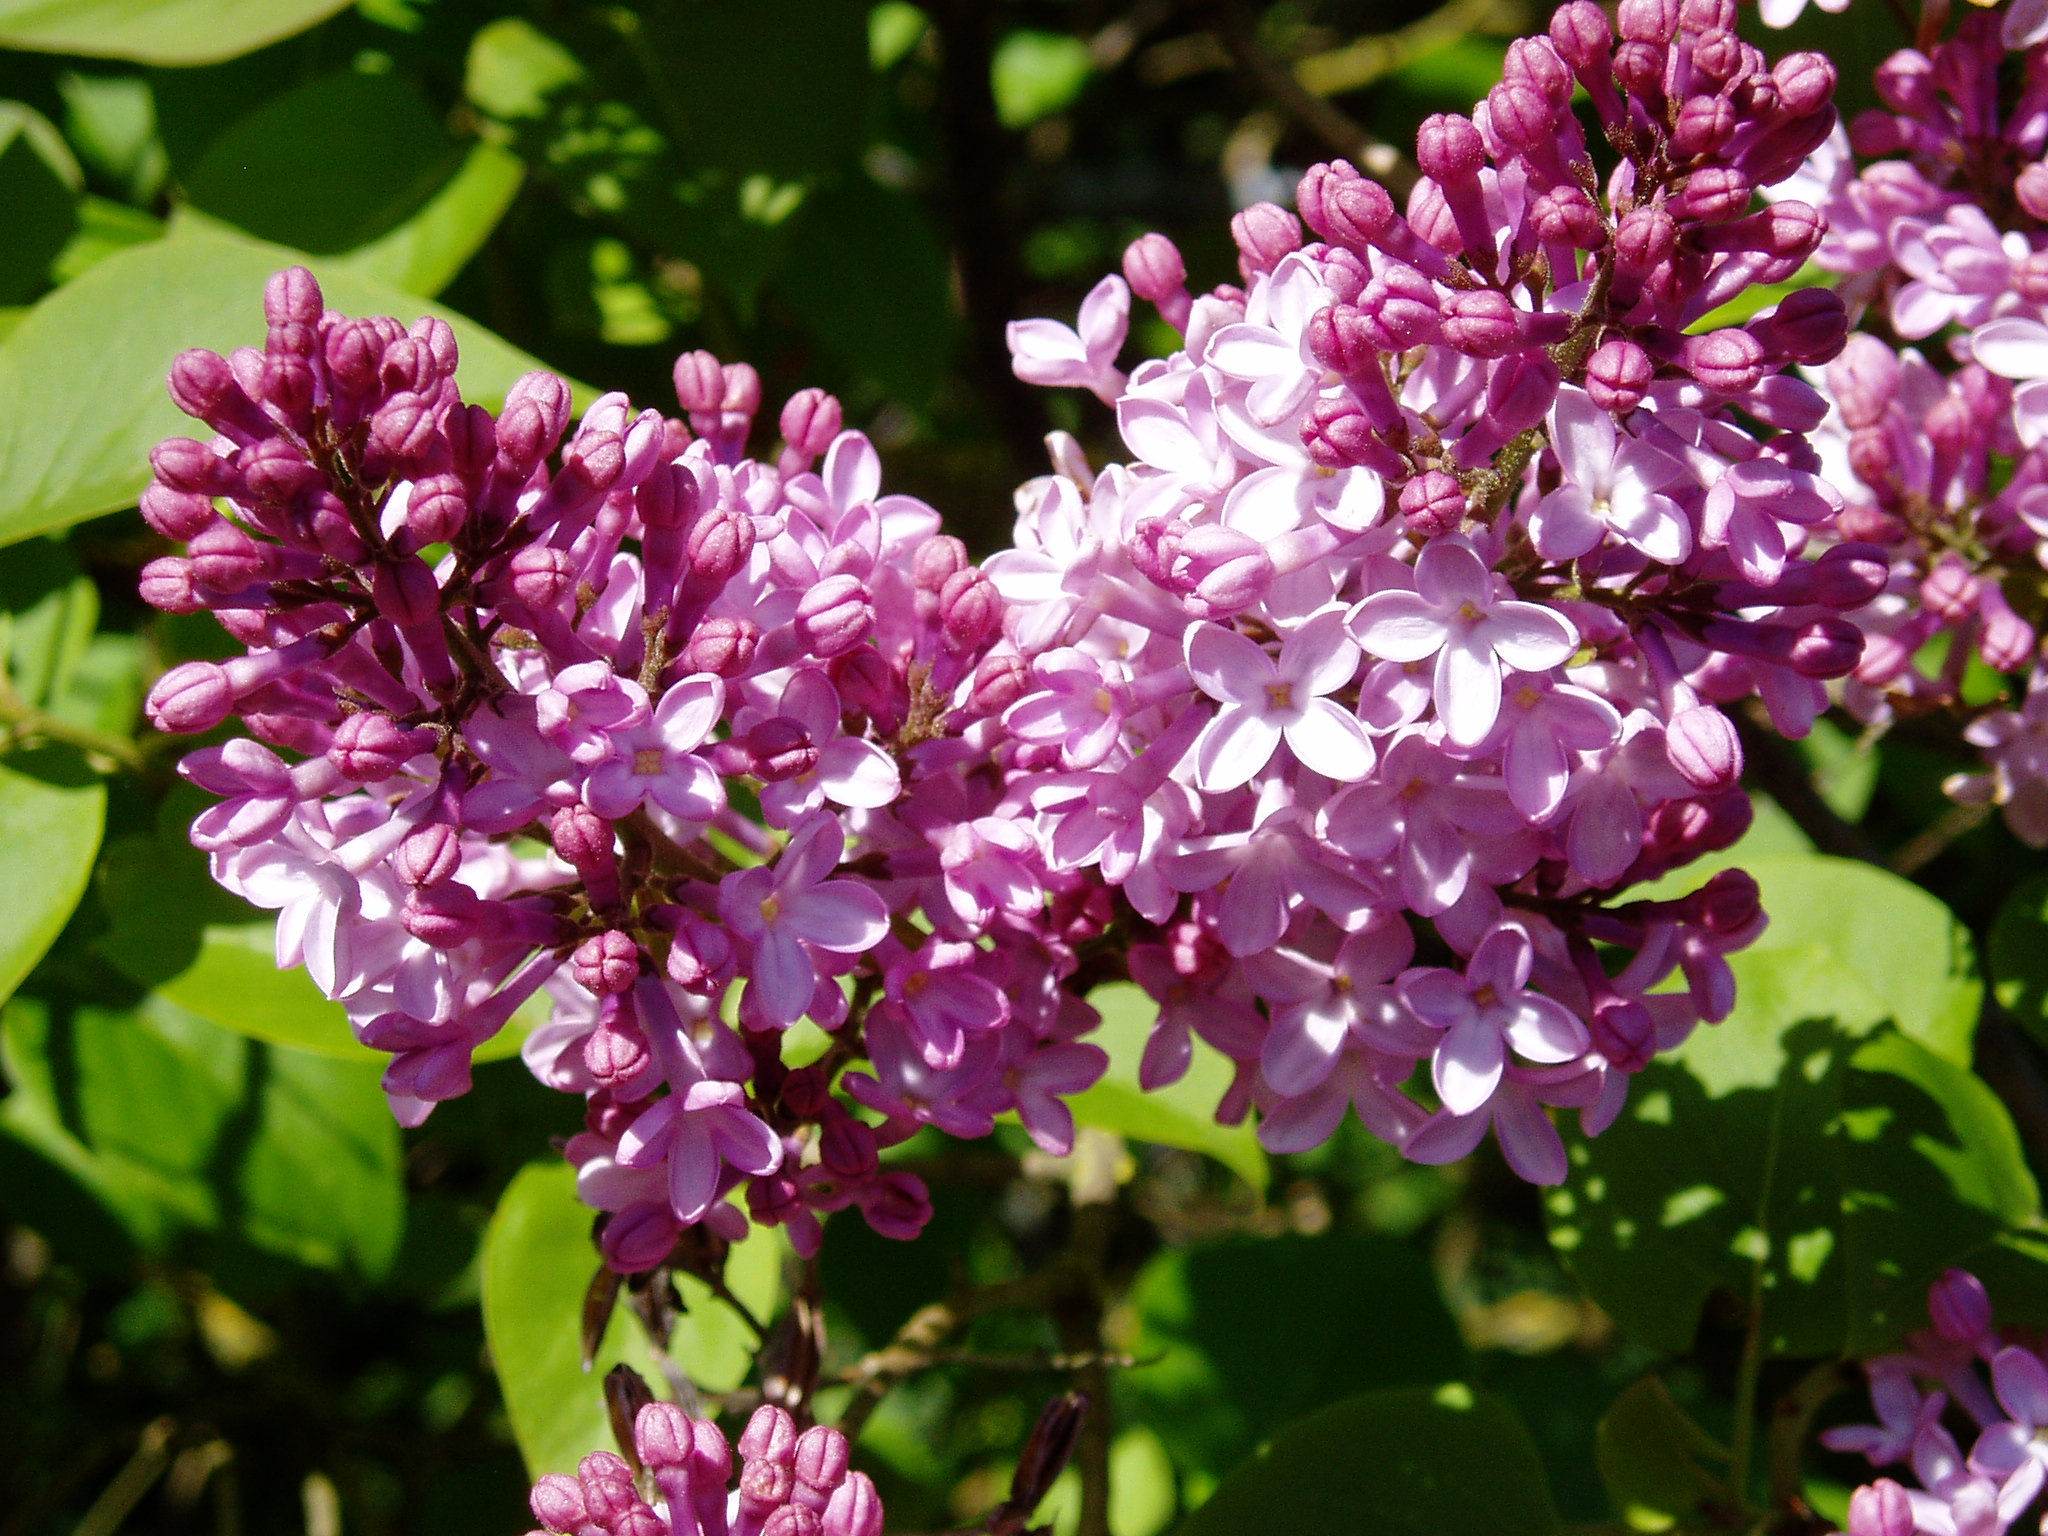 lilac flower colors photo 34692182 fanpop